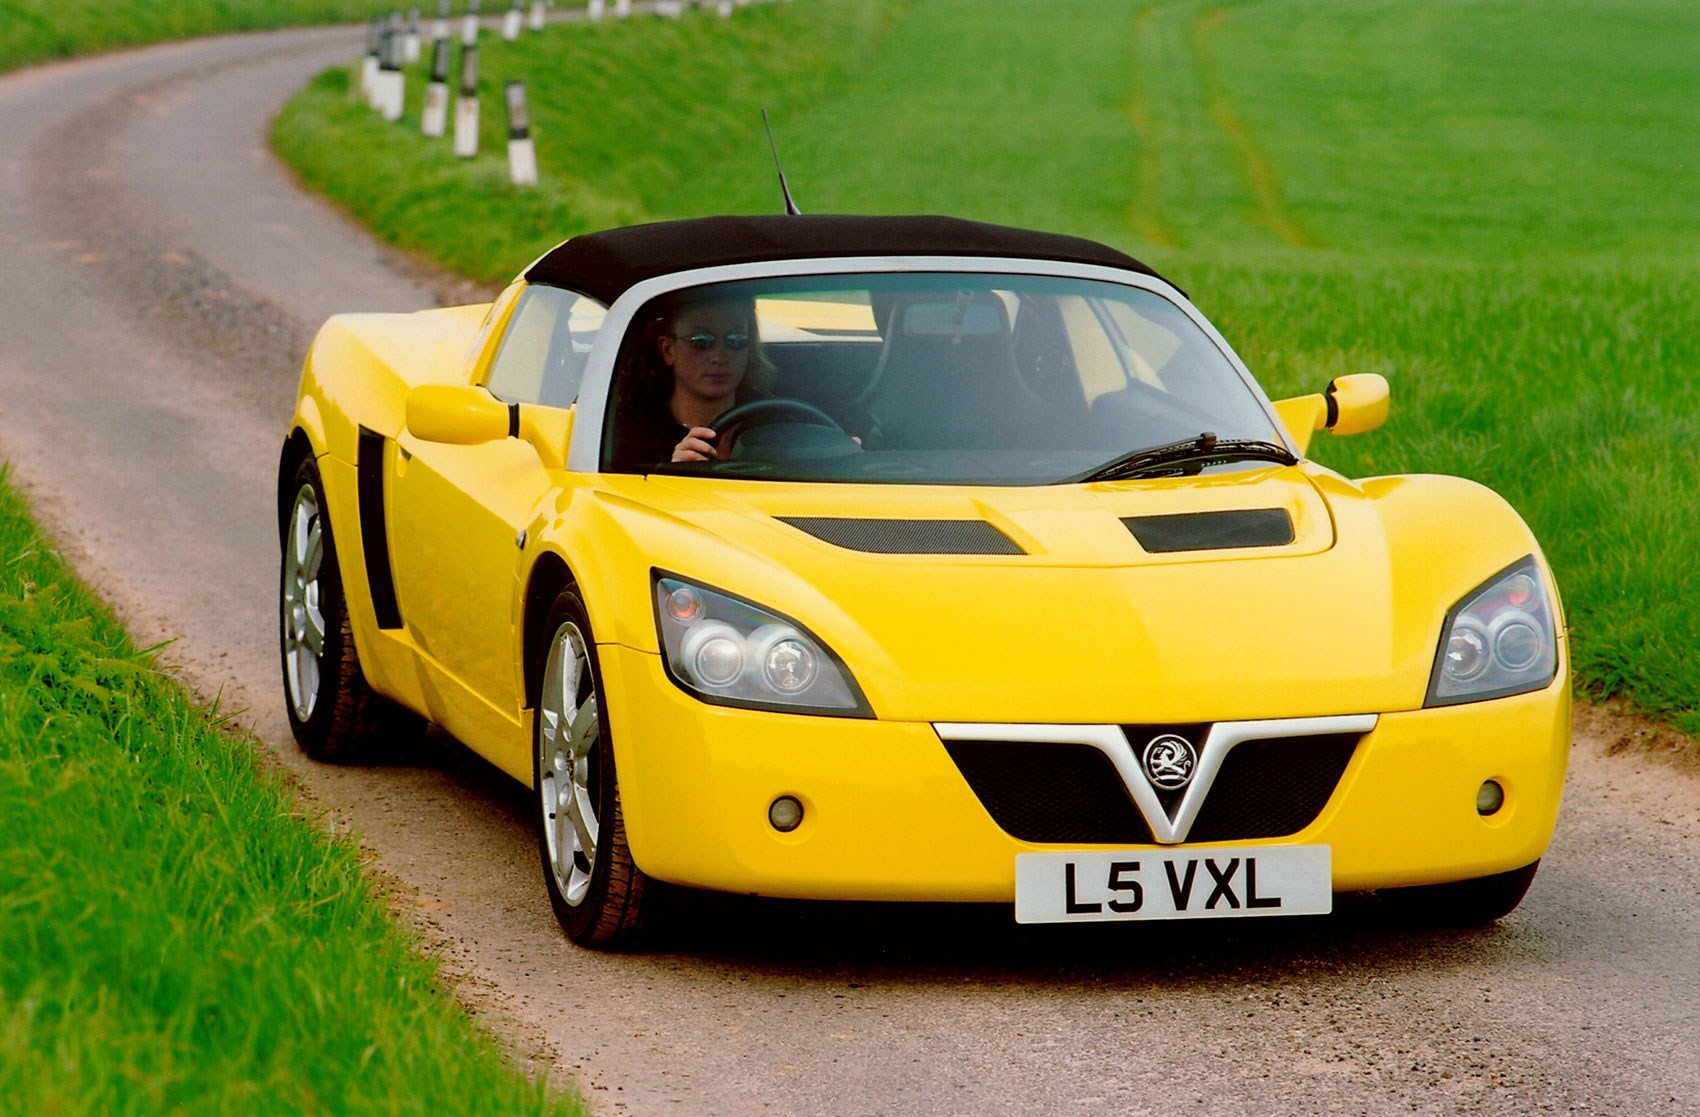 Buy Second Hand Sports Car Uk